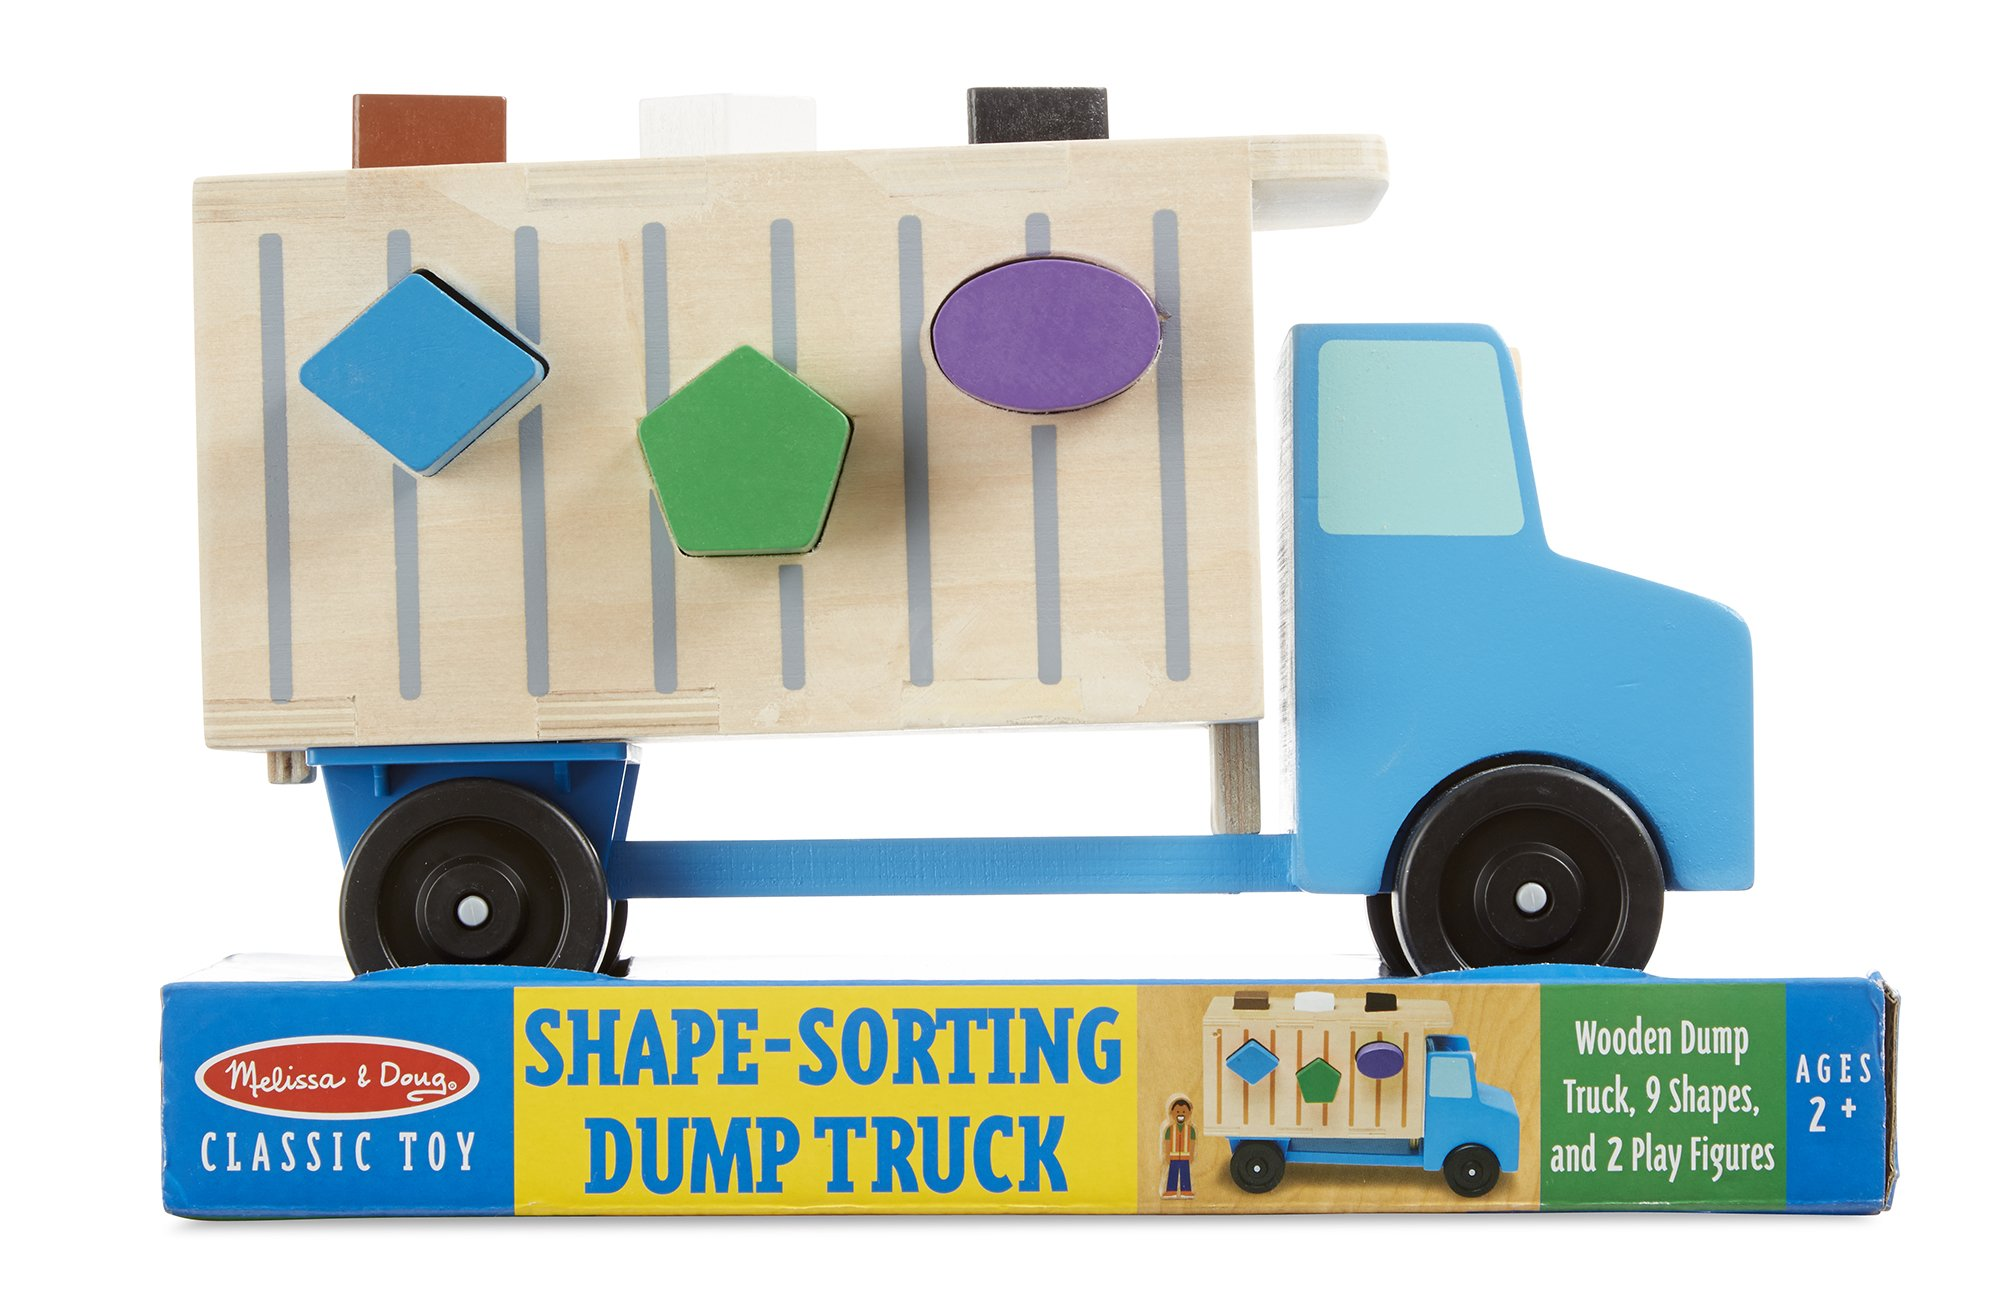 Melissa & Doug Shape-Sorting Wooden Dump Truck Toy, Quality Craftsmanship, 9 Colorful Shapes and 2 Play Figures, 7.5'' H x 10.75'' W x 4.75'' L by Melissa & Doug (Image #3)